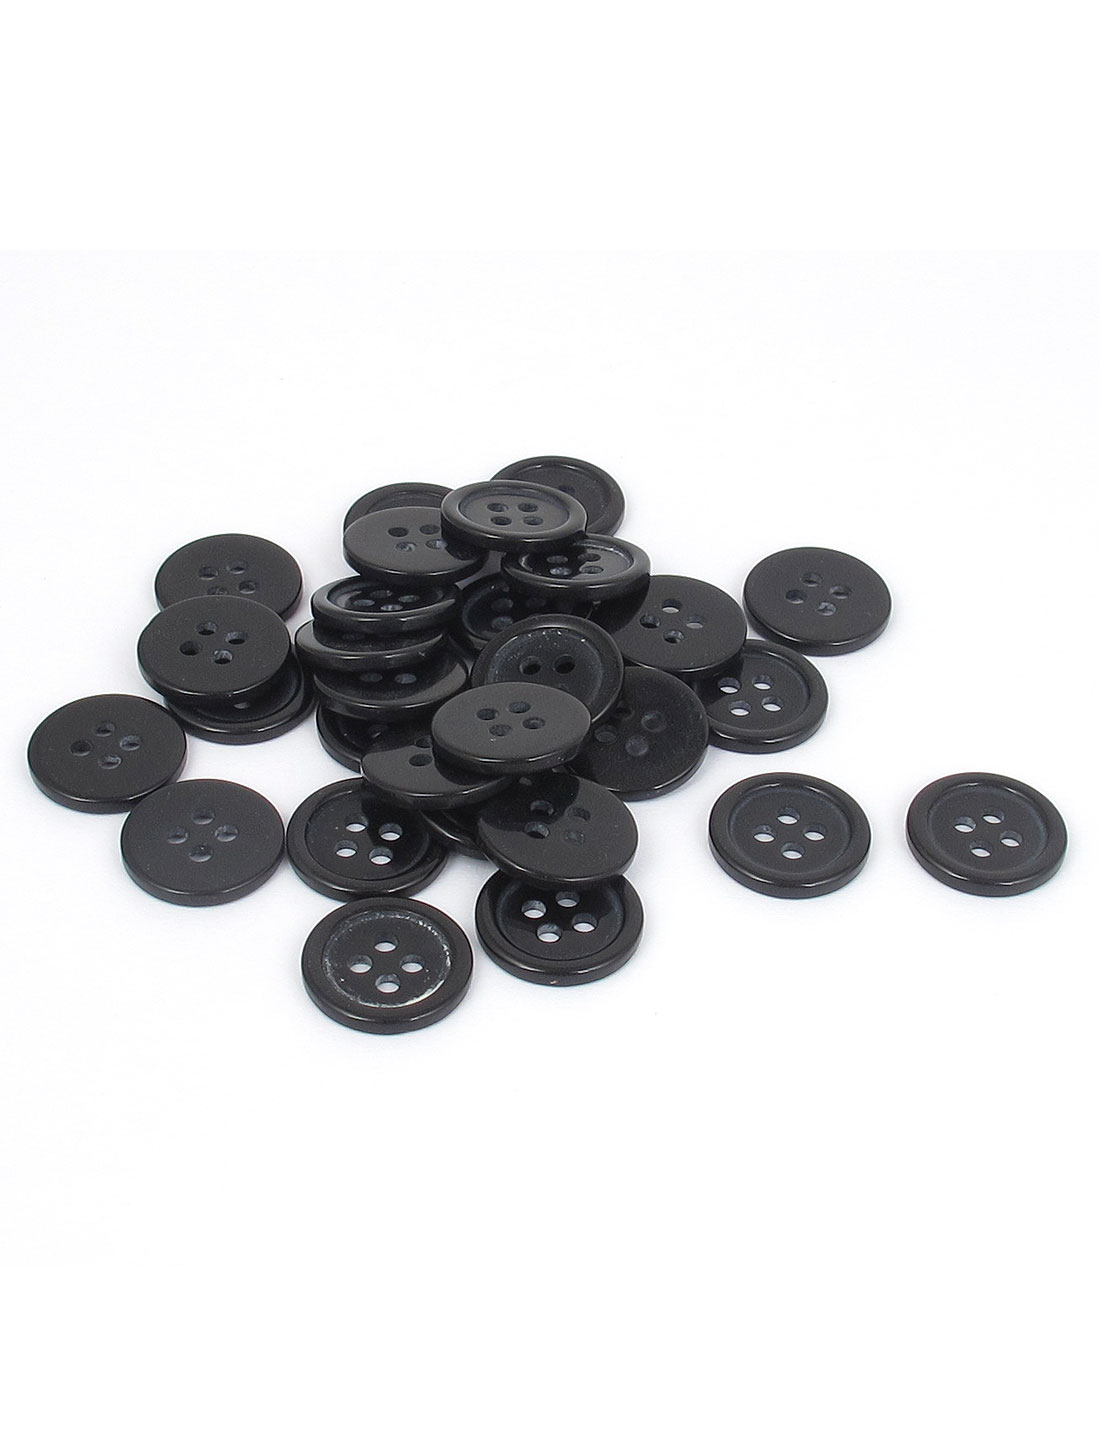 1.3cm Black Round Resin Buttons 4 Holes Clothing Button Scrapbooking Sewing 30pcs